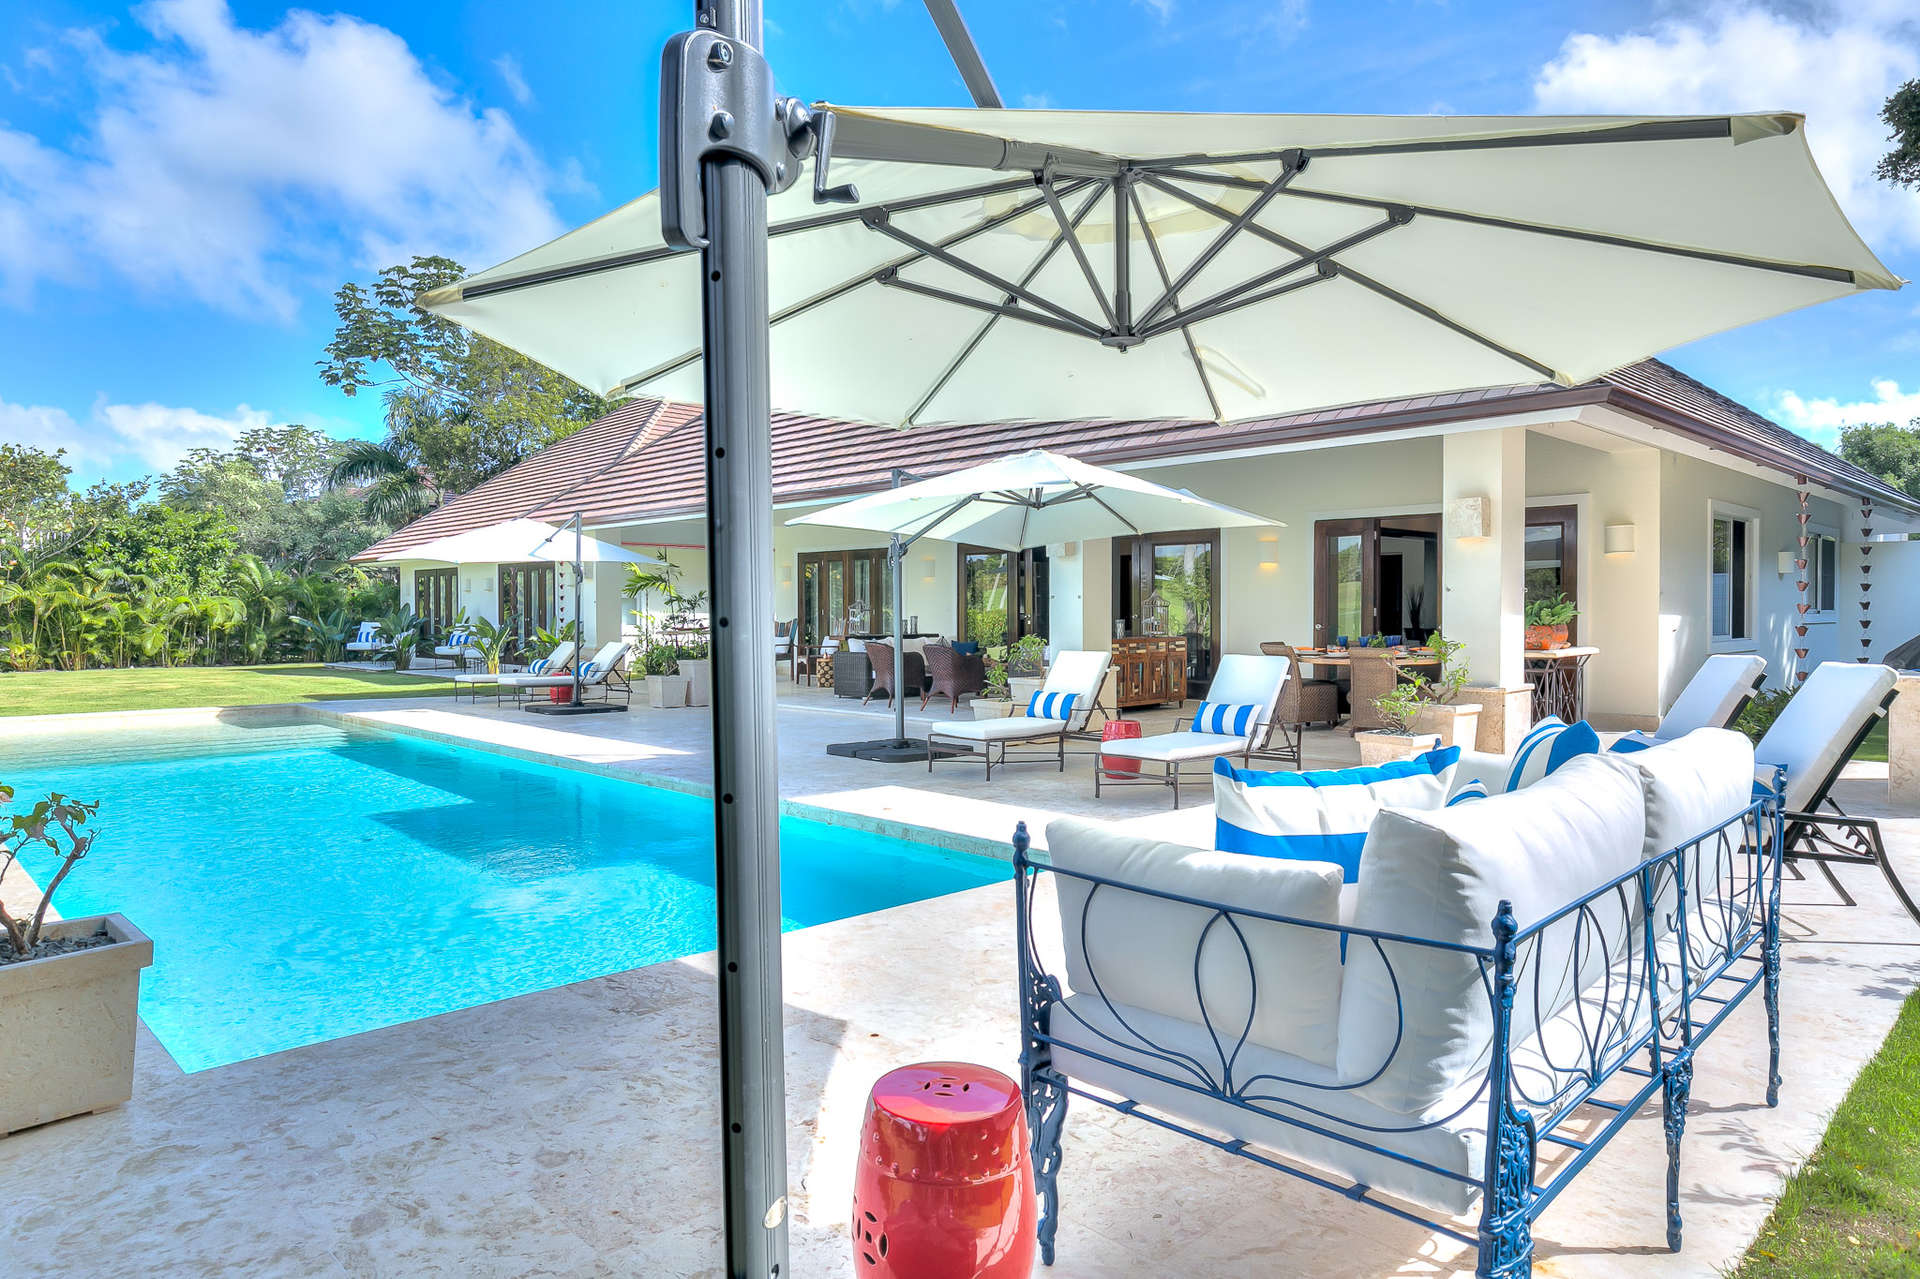 Luxury Villa in Punta Cana with private pool and kitchen